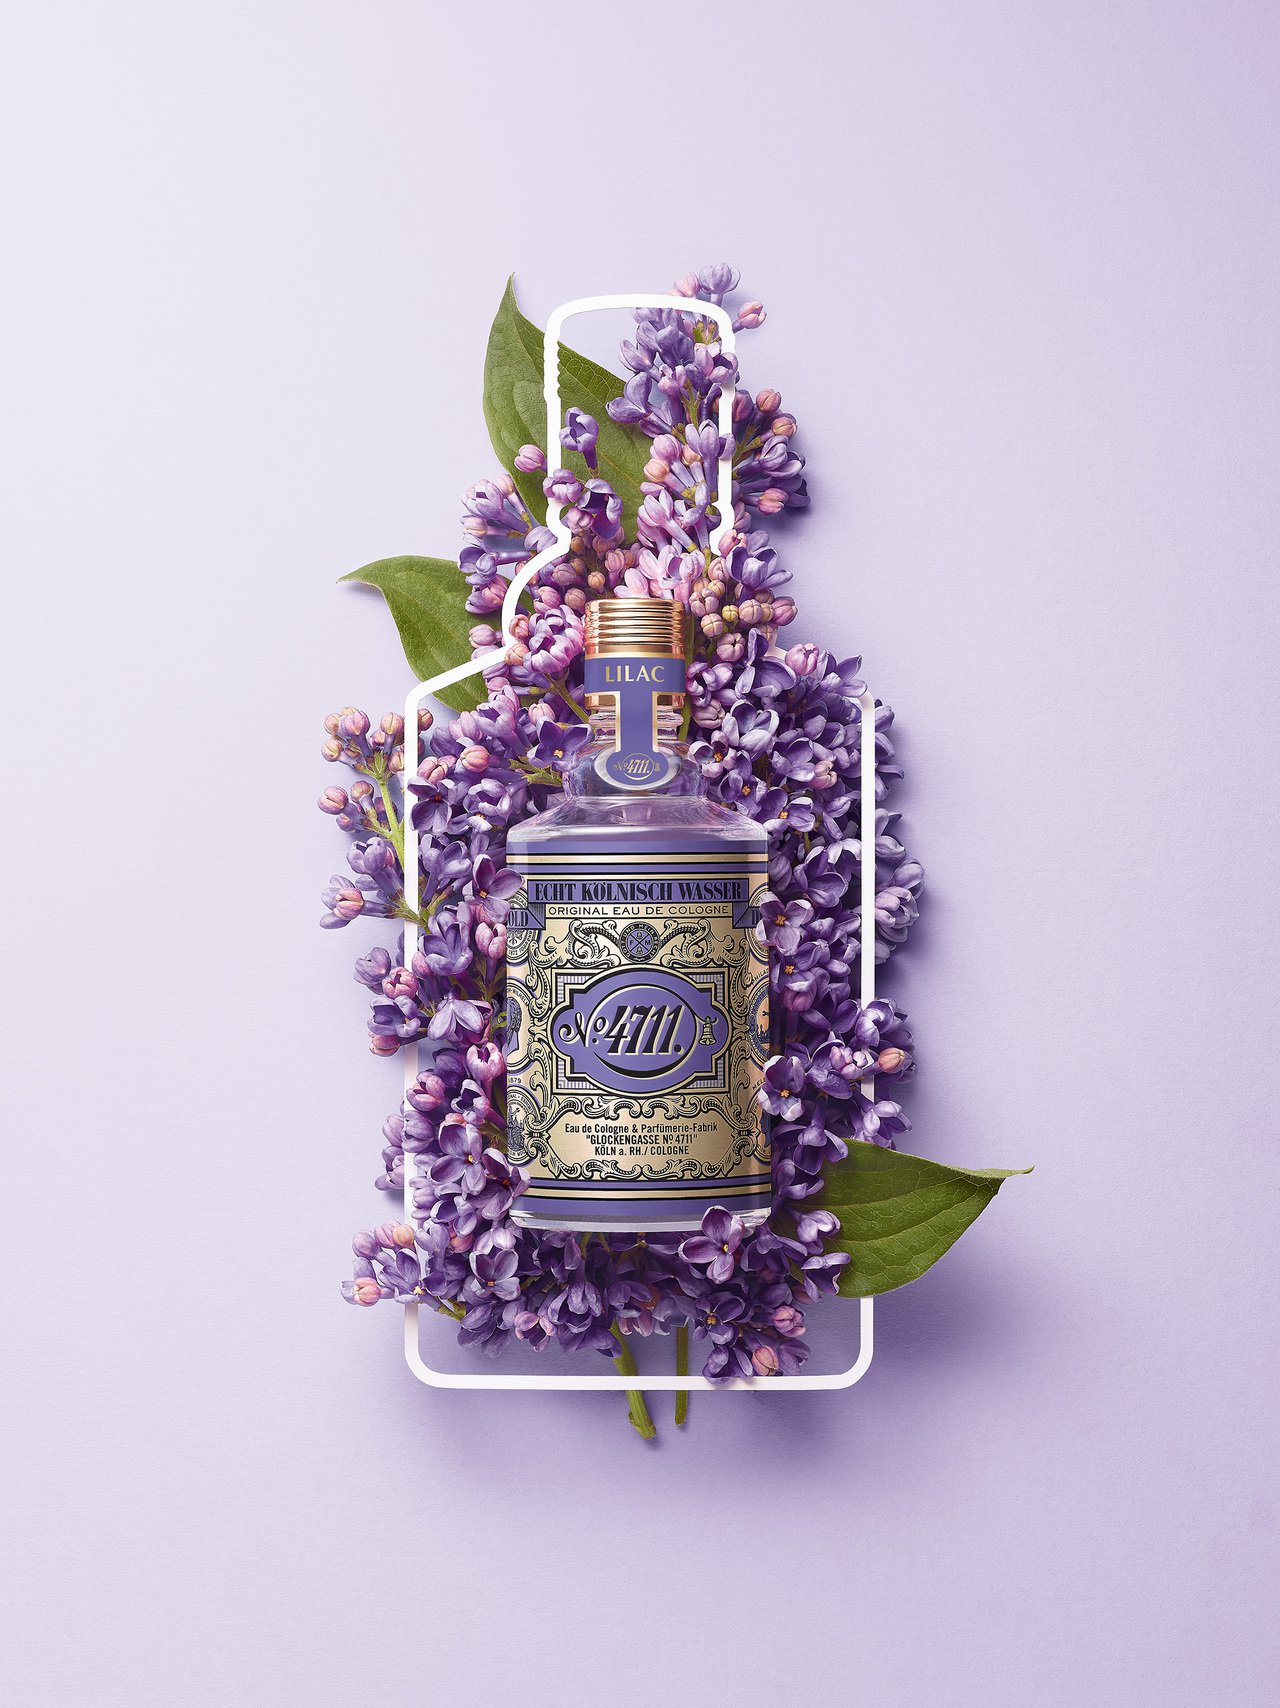 4711 Floral collection花卉系列「紫丁香LILAC」,100...